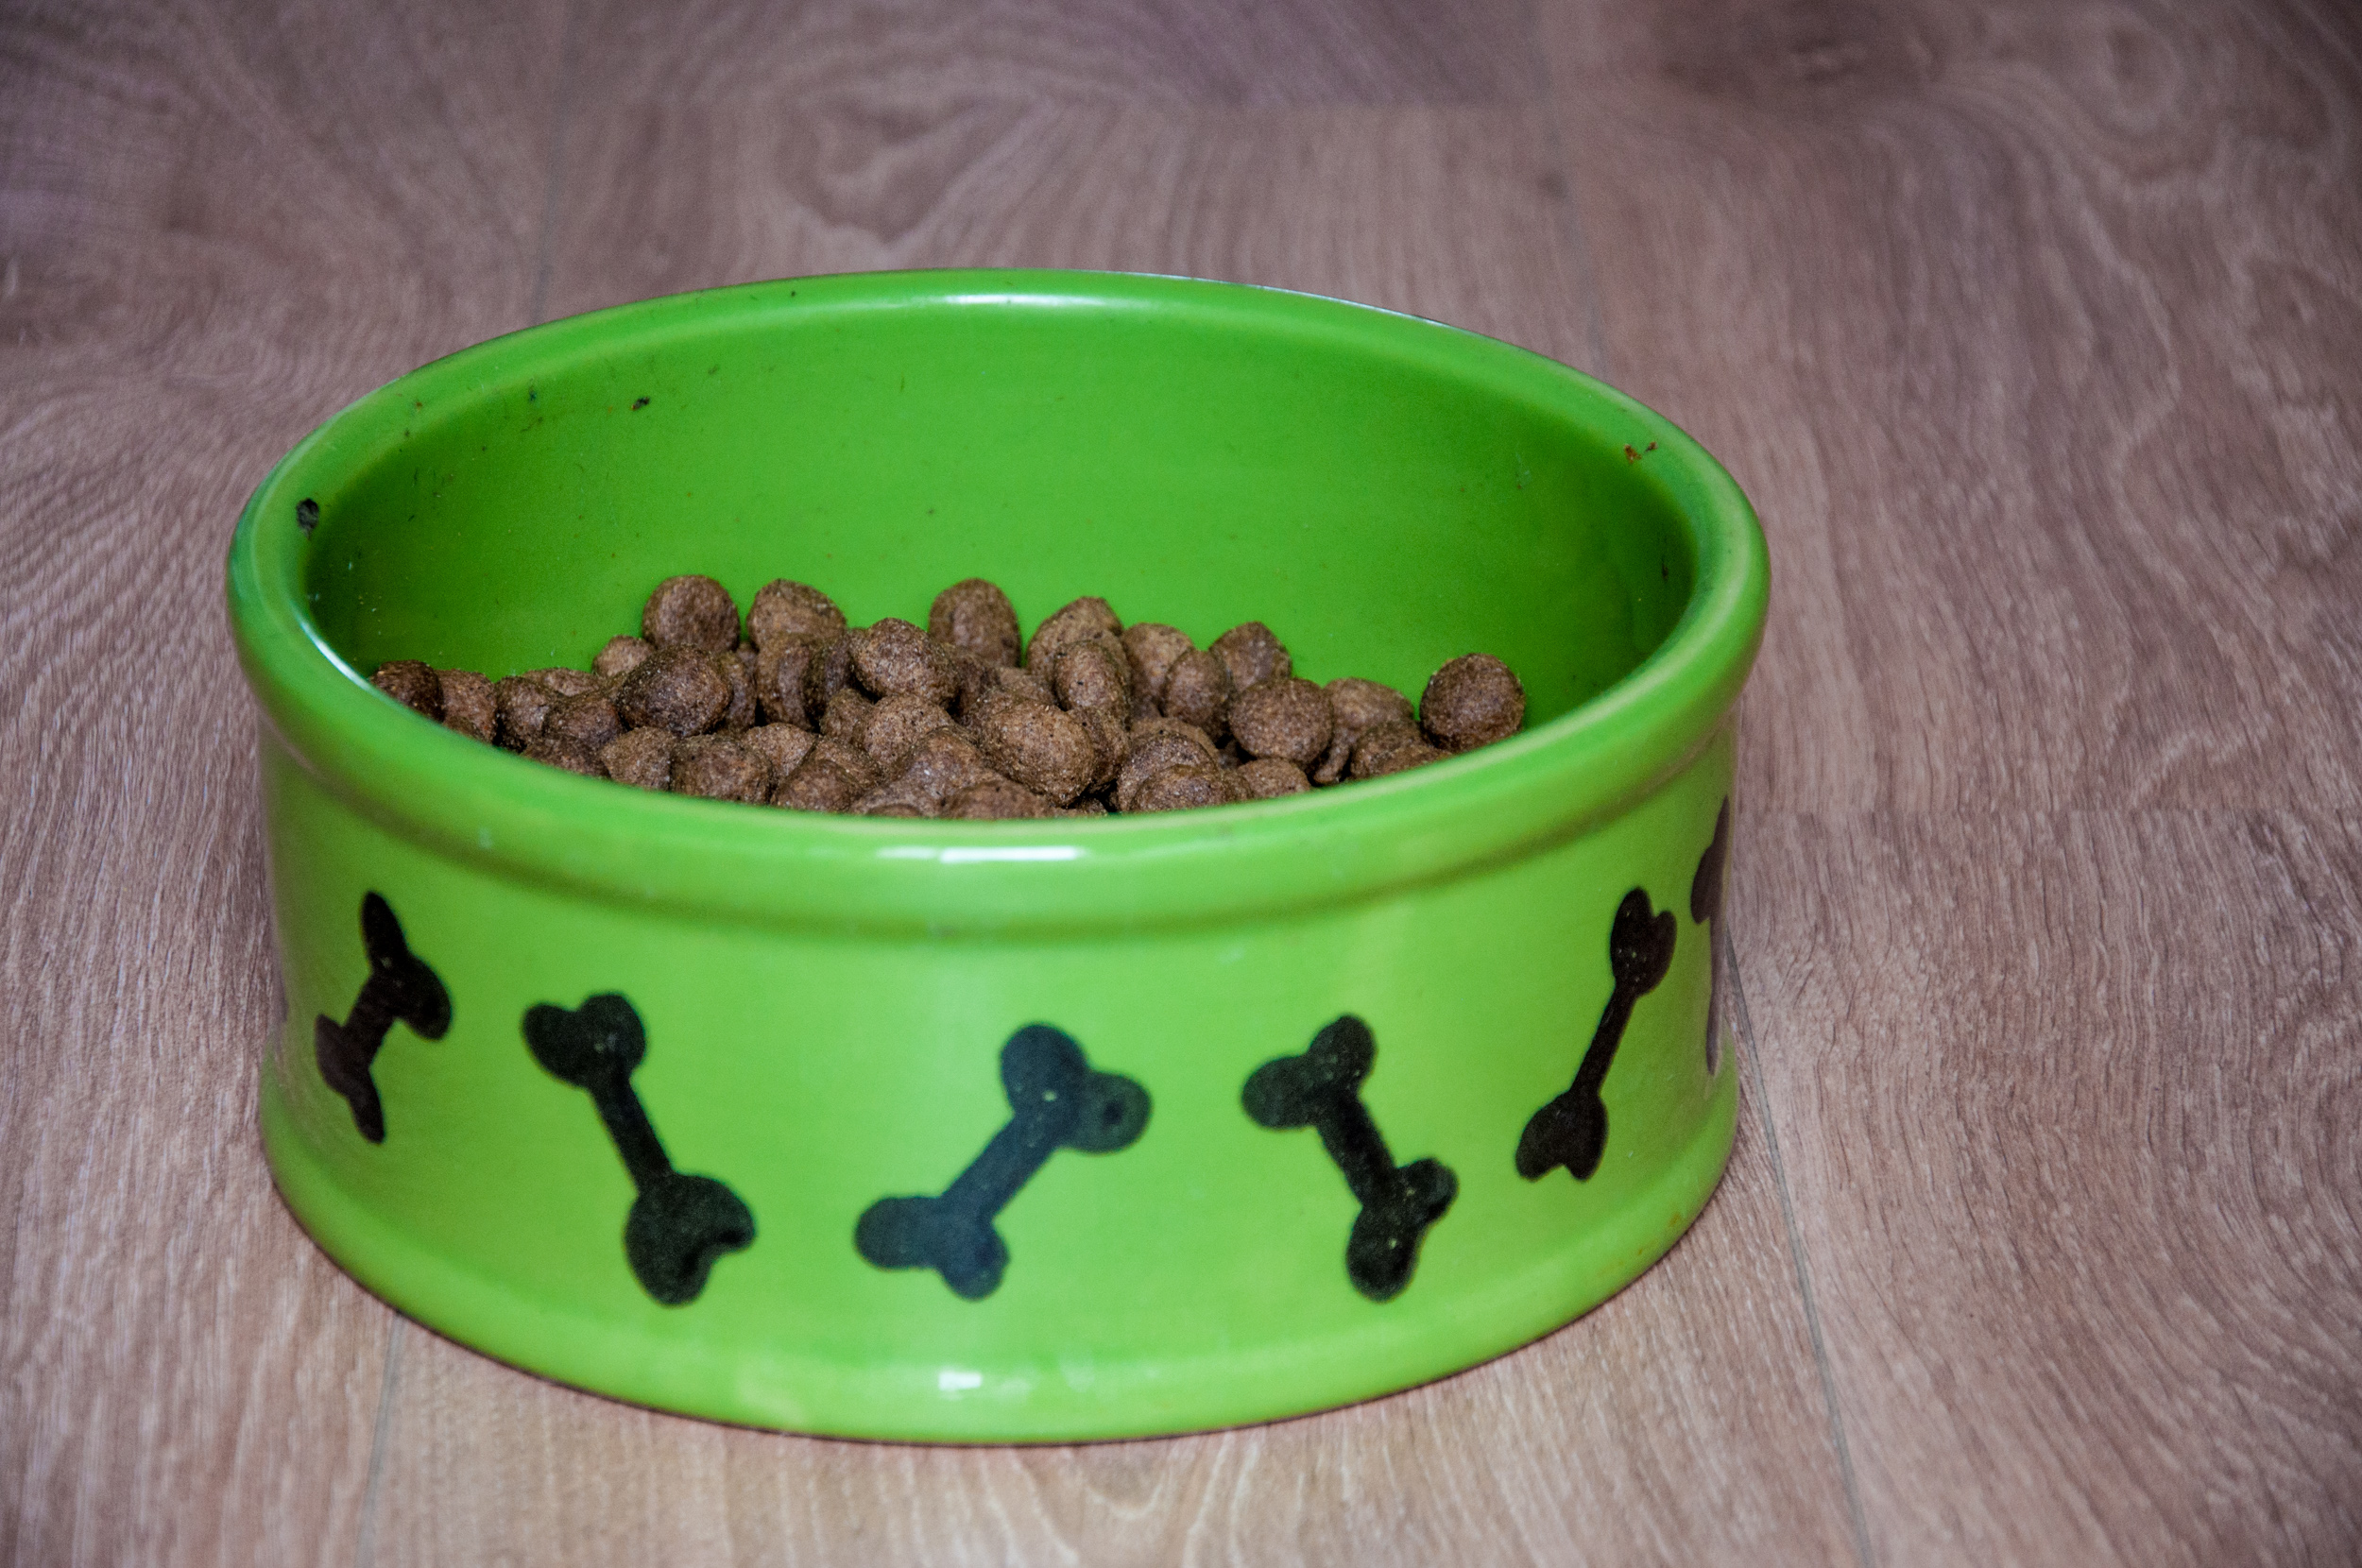 Bowl with dry food for dog or cat, Biscuit, Puppy, Material, Meal, HQ Photo